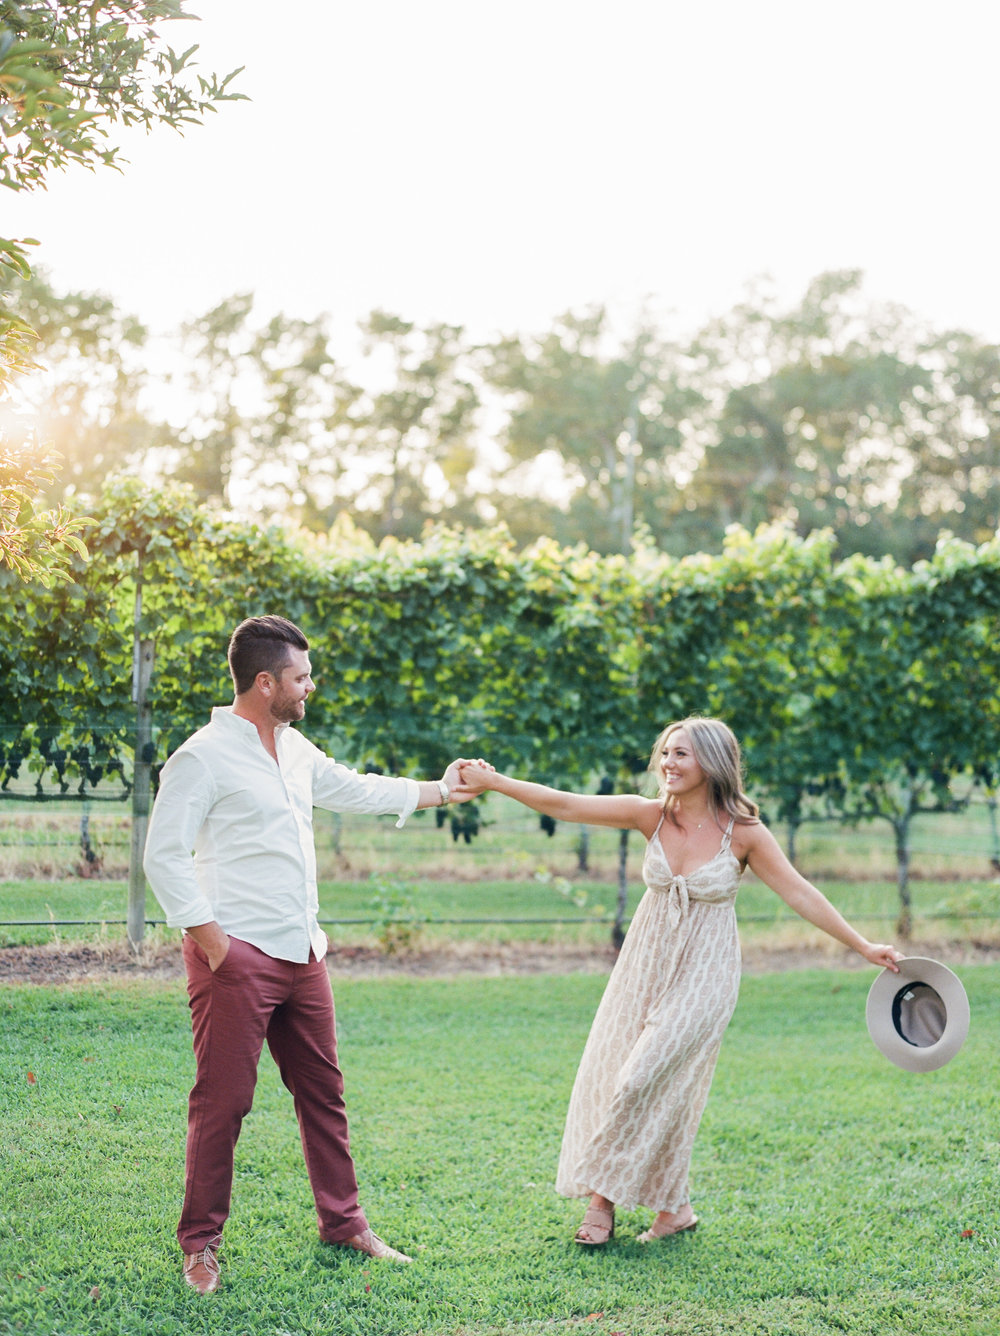 Winery Engagement Session on Film by Magdalena Studios_4.jpg